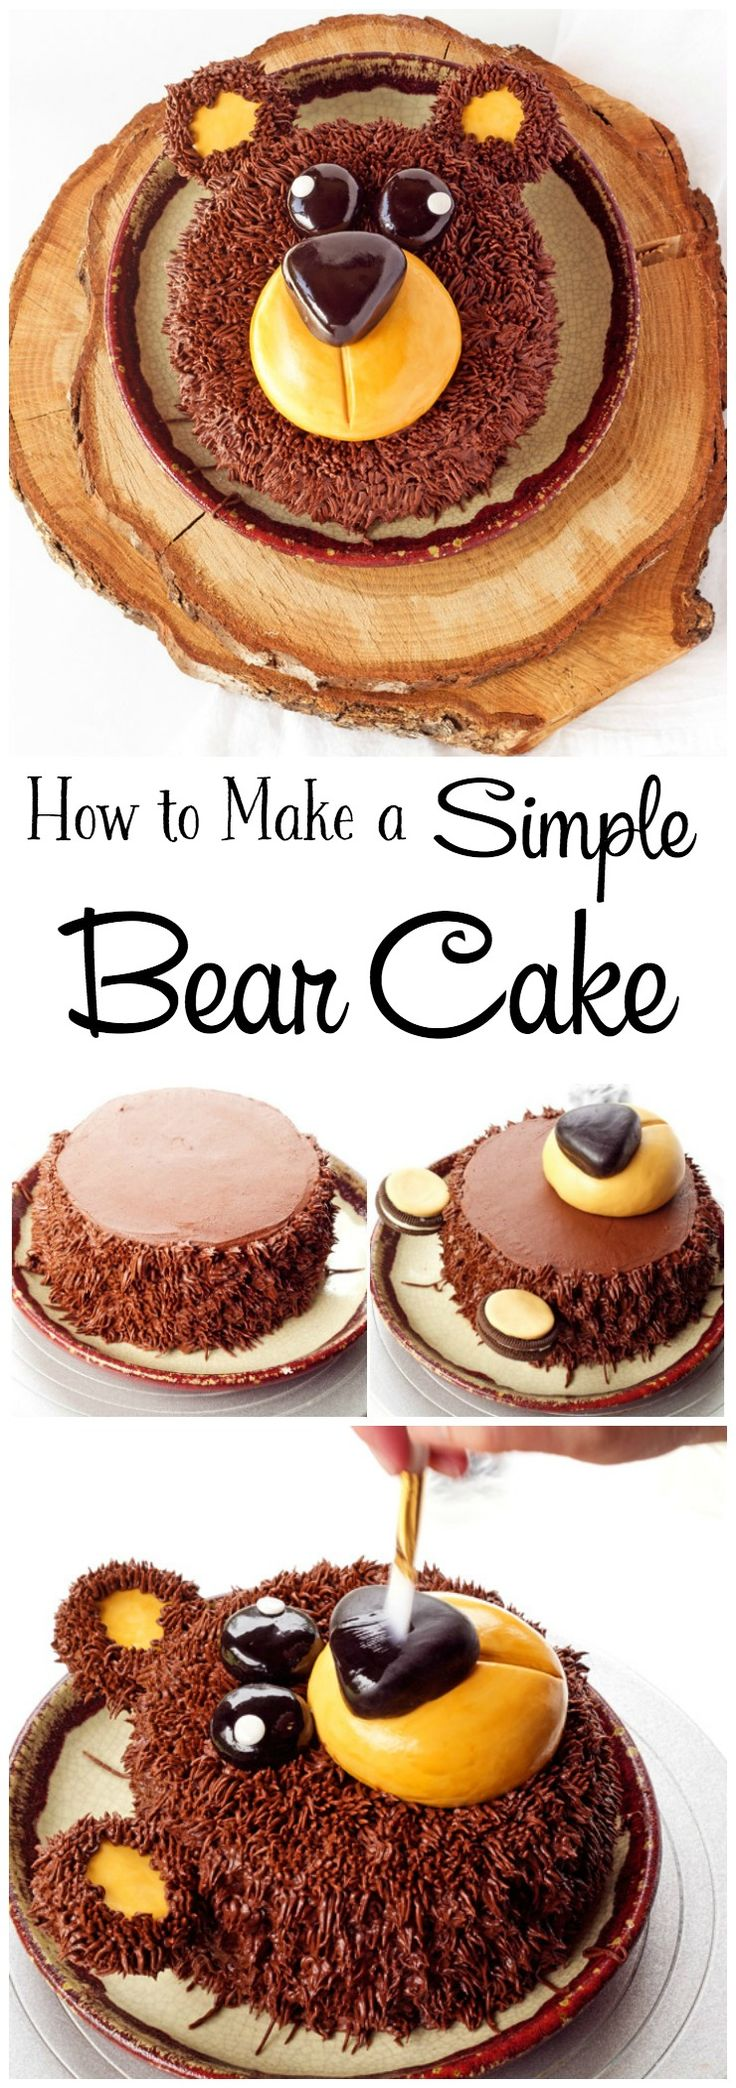 Natalie s creative cakes animal cakes - How To Make A Simple Bear Cake With Video